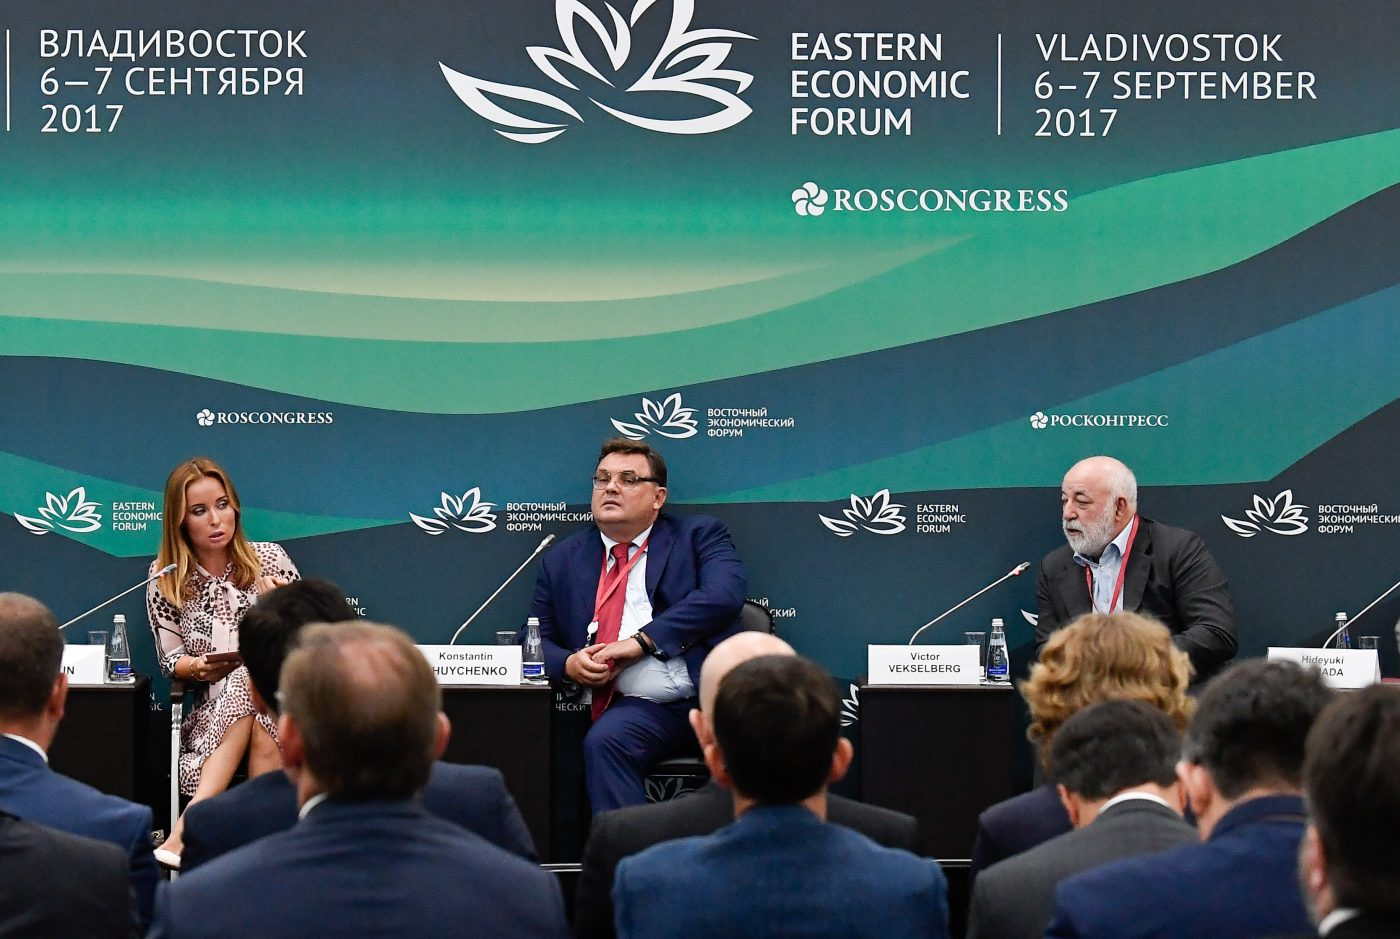 The Lake Baikal Foundation at the Eastern Economic Forum